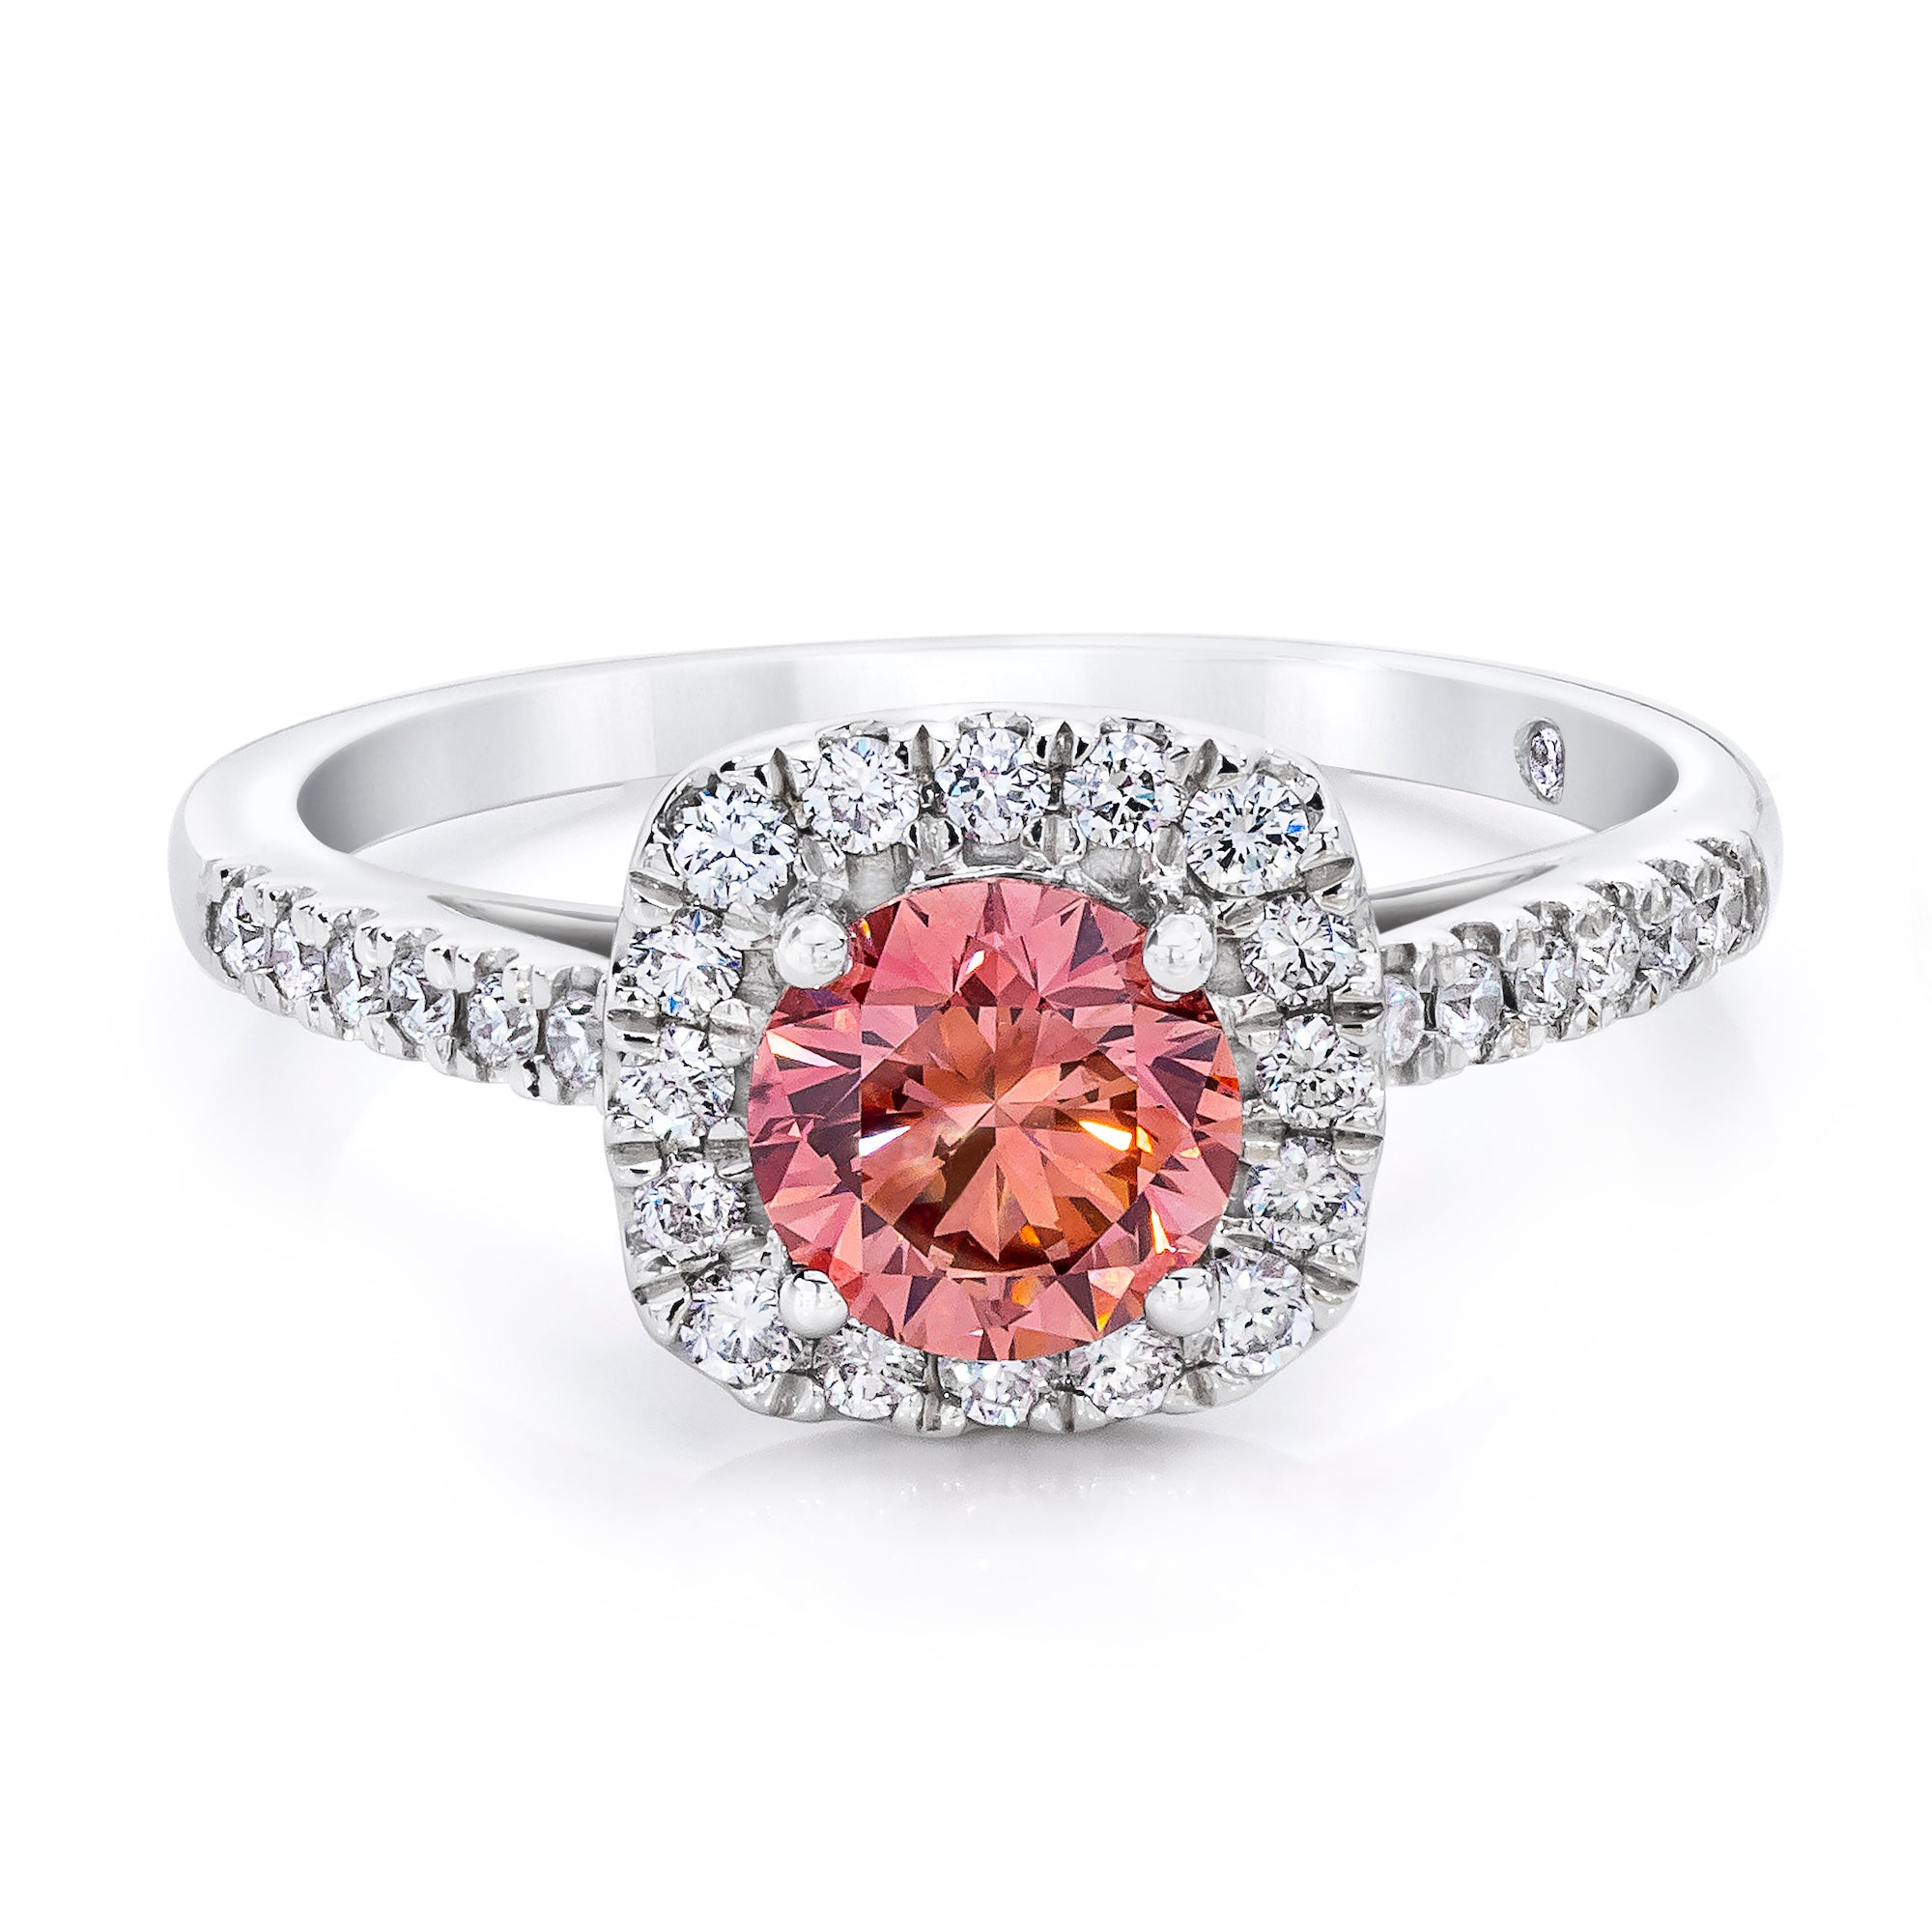 Pink & White Lab-Grown Diamond Halo Ring